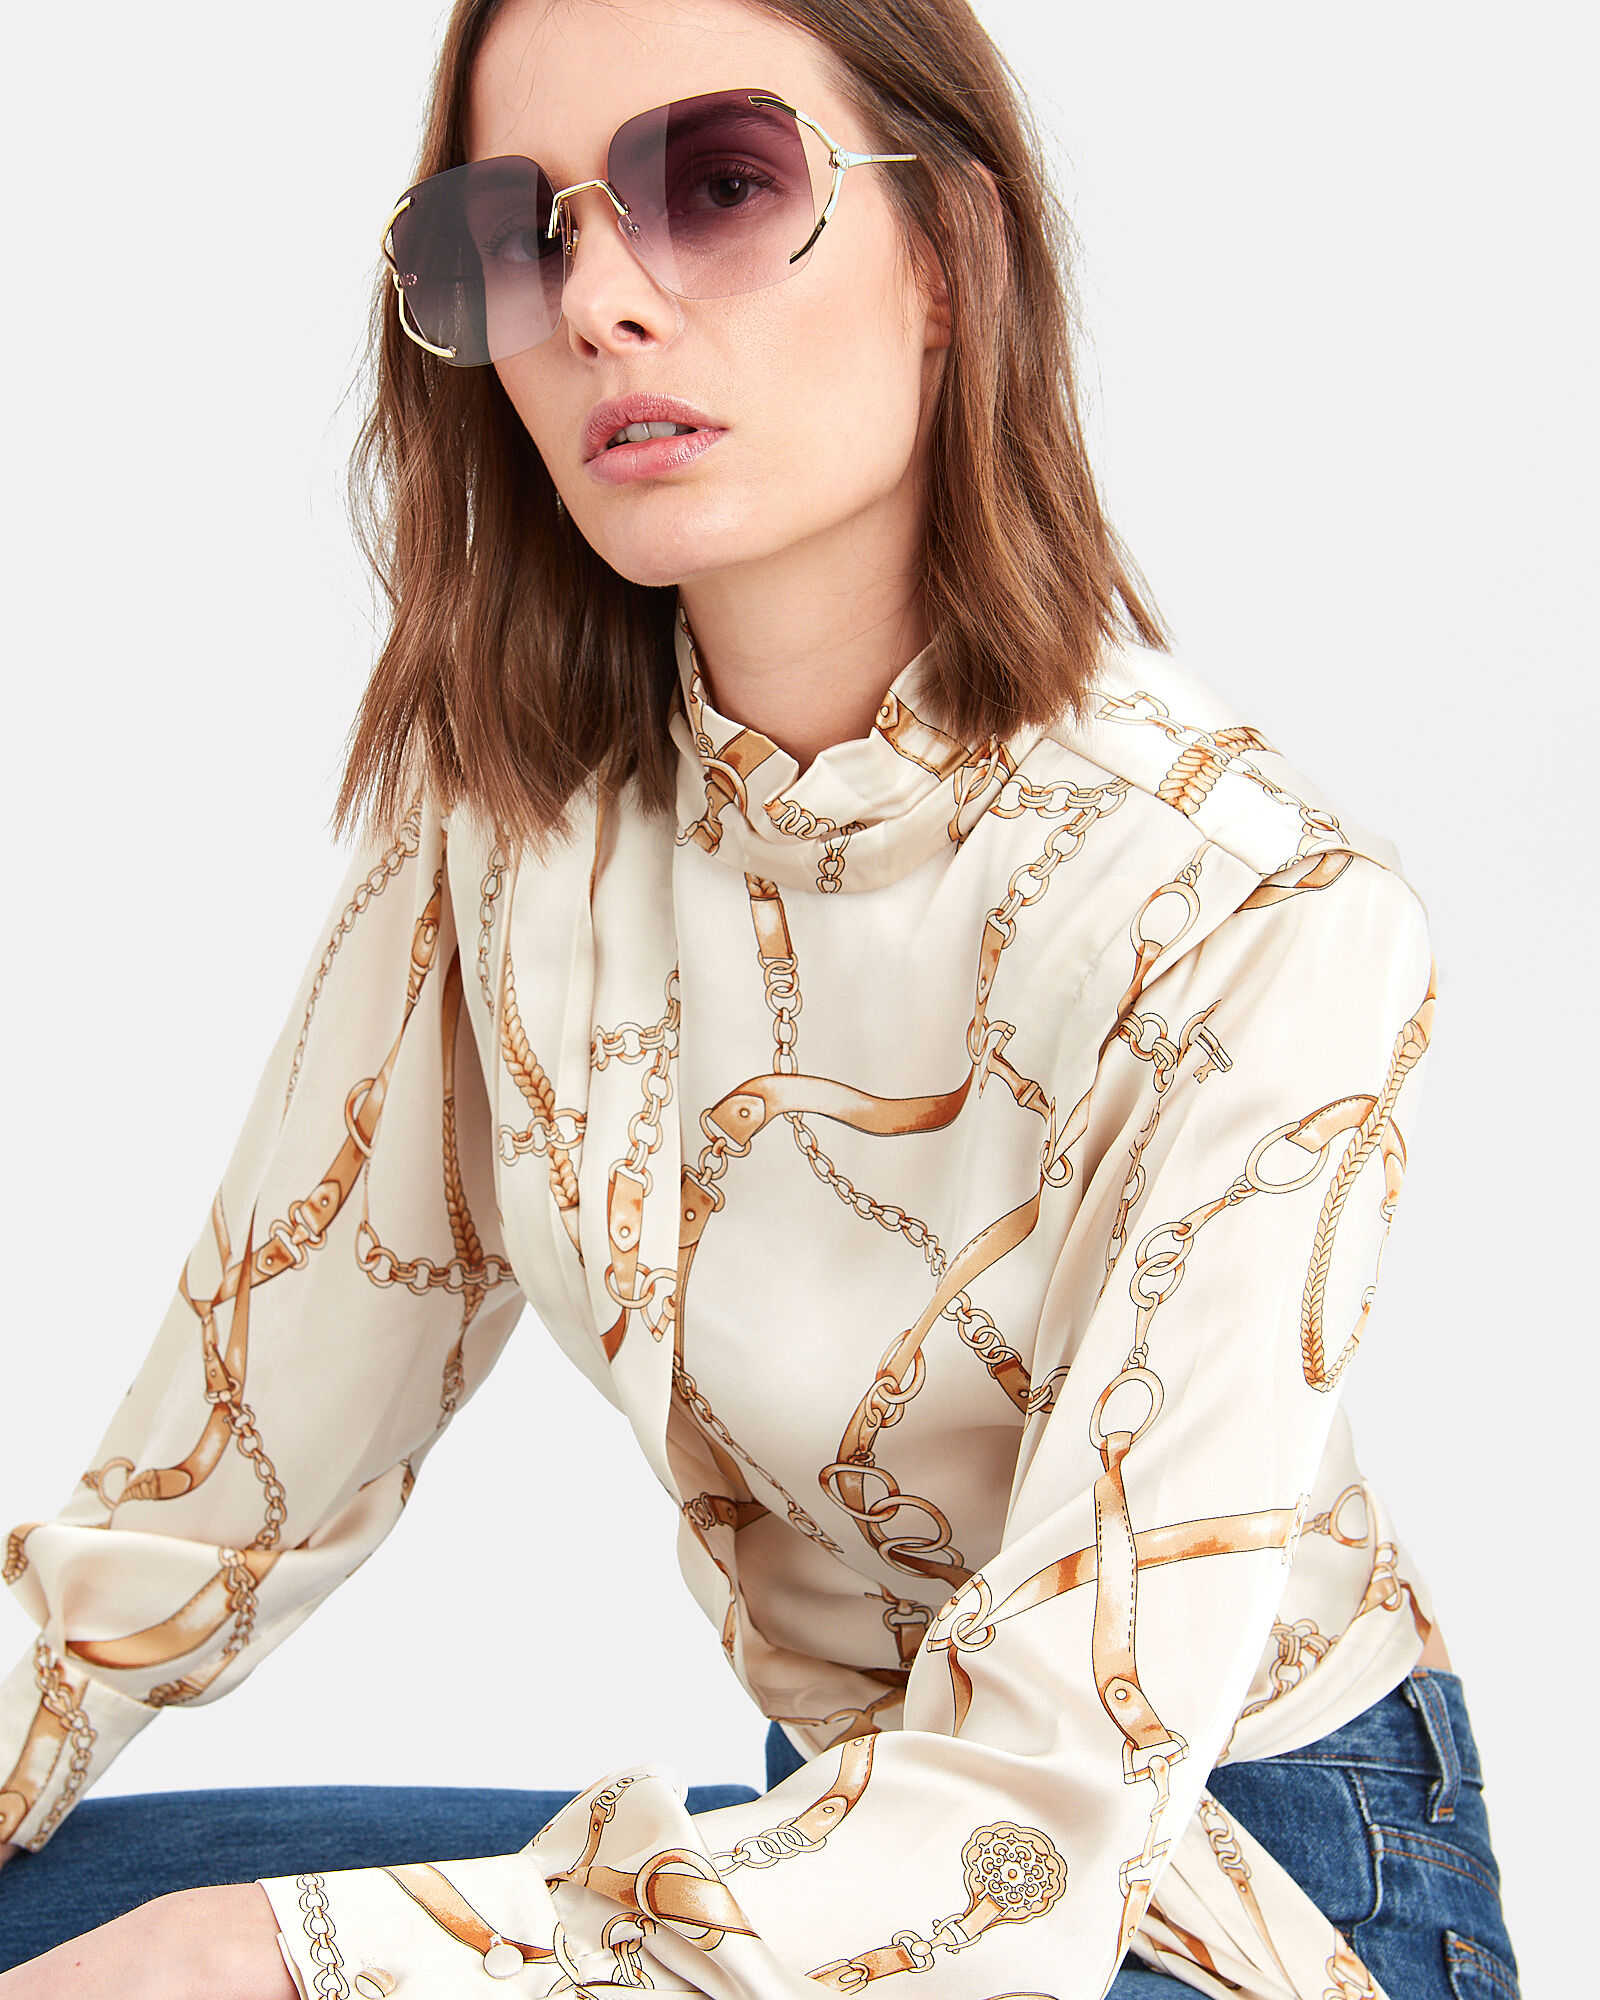 Oversized Square Sunglasses, GOLD/VIOLET, hi-res